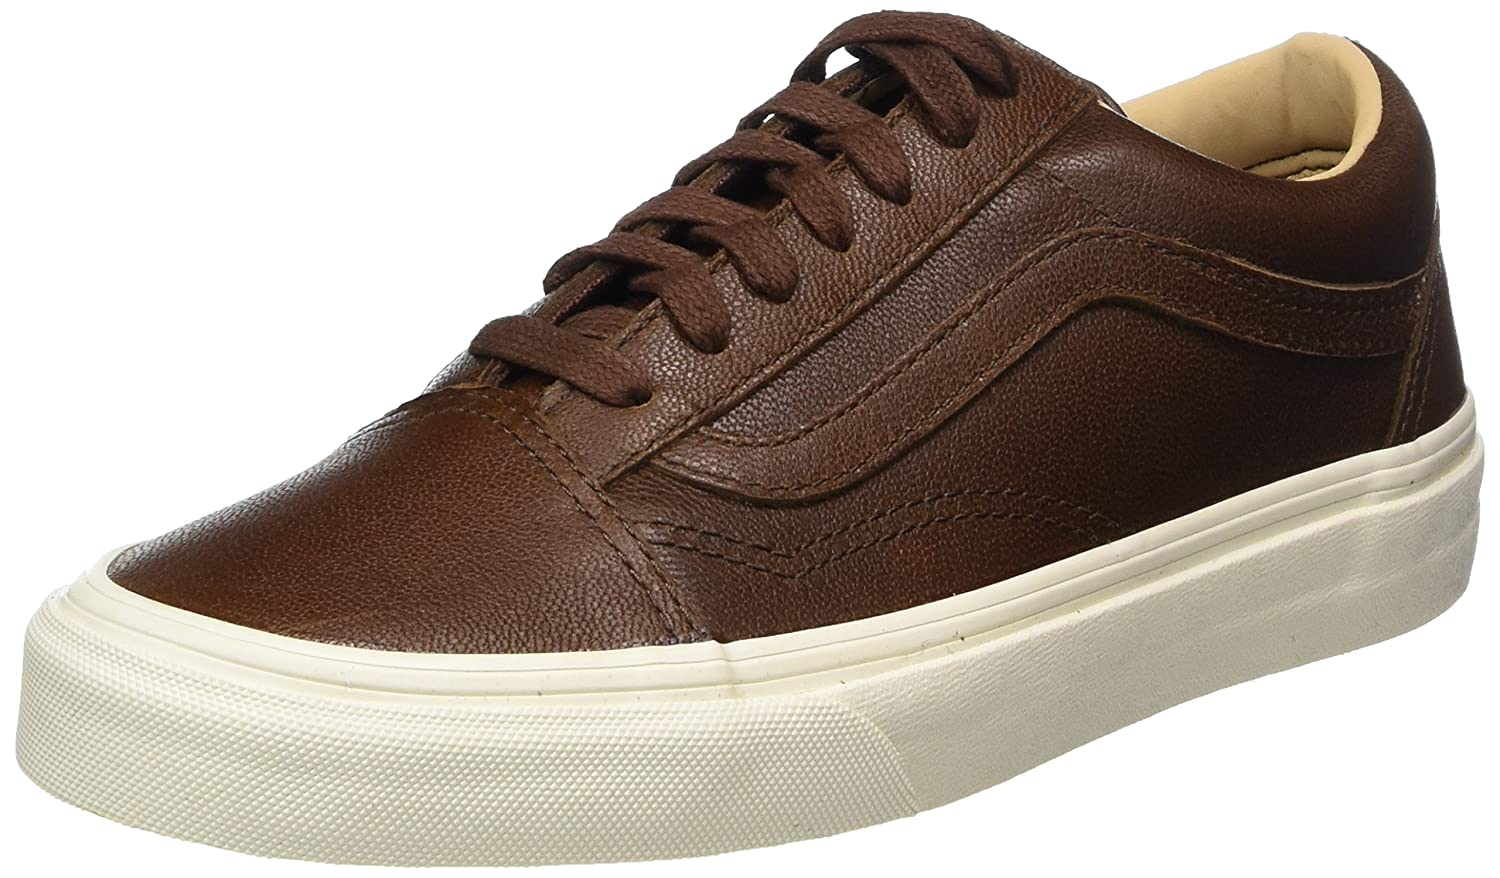 92ffa777aa Vans Unisex Adults  Old Skool Trainers